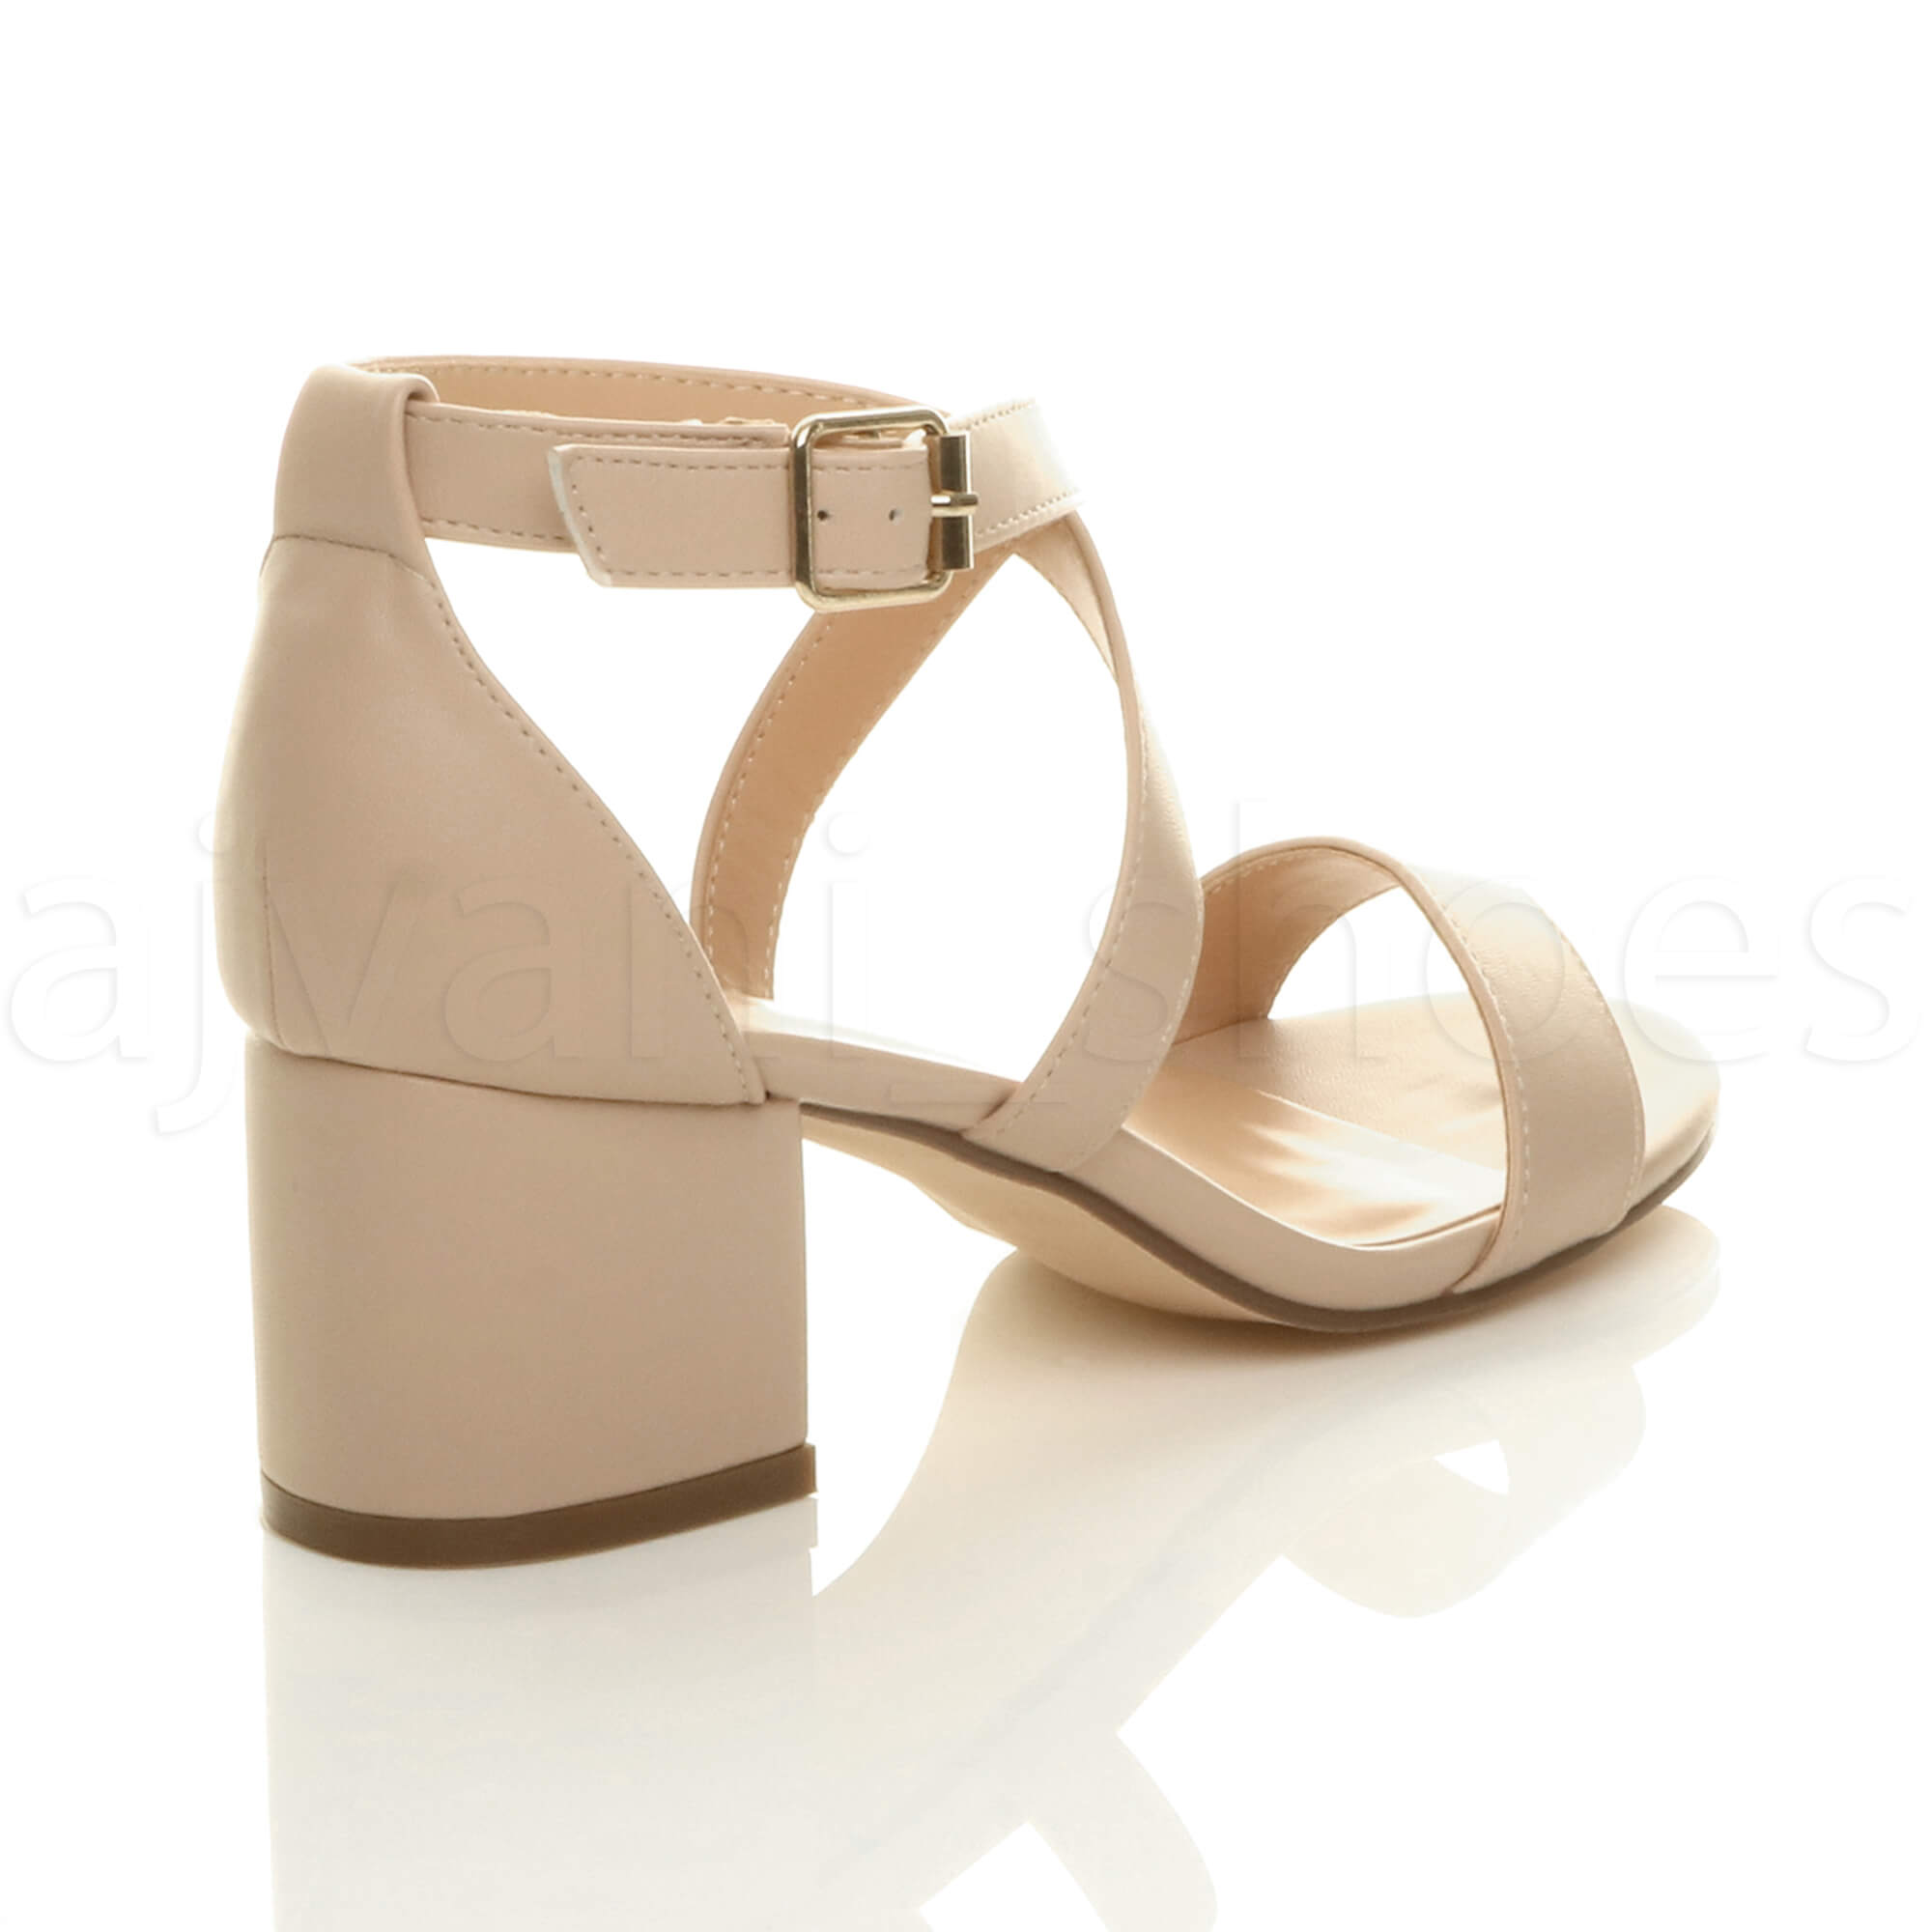 WOMENS-LADIES-MID-LOW-BLOCK-HEEL-CROSS-STRAPS-PARTY-STRAPPY-SANDALS-SHOES-SIZE thumbnail 54